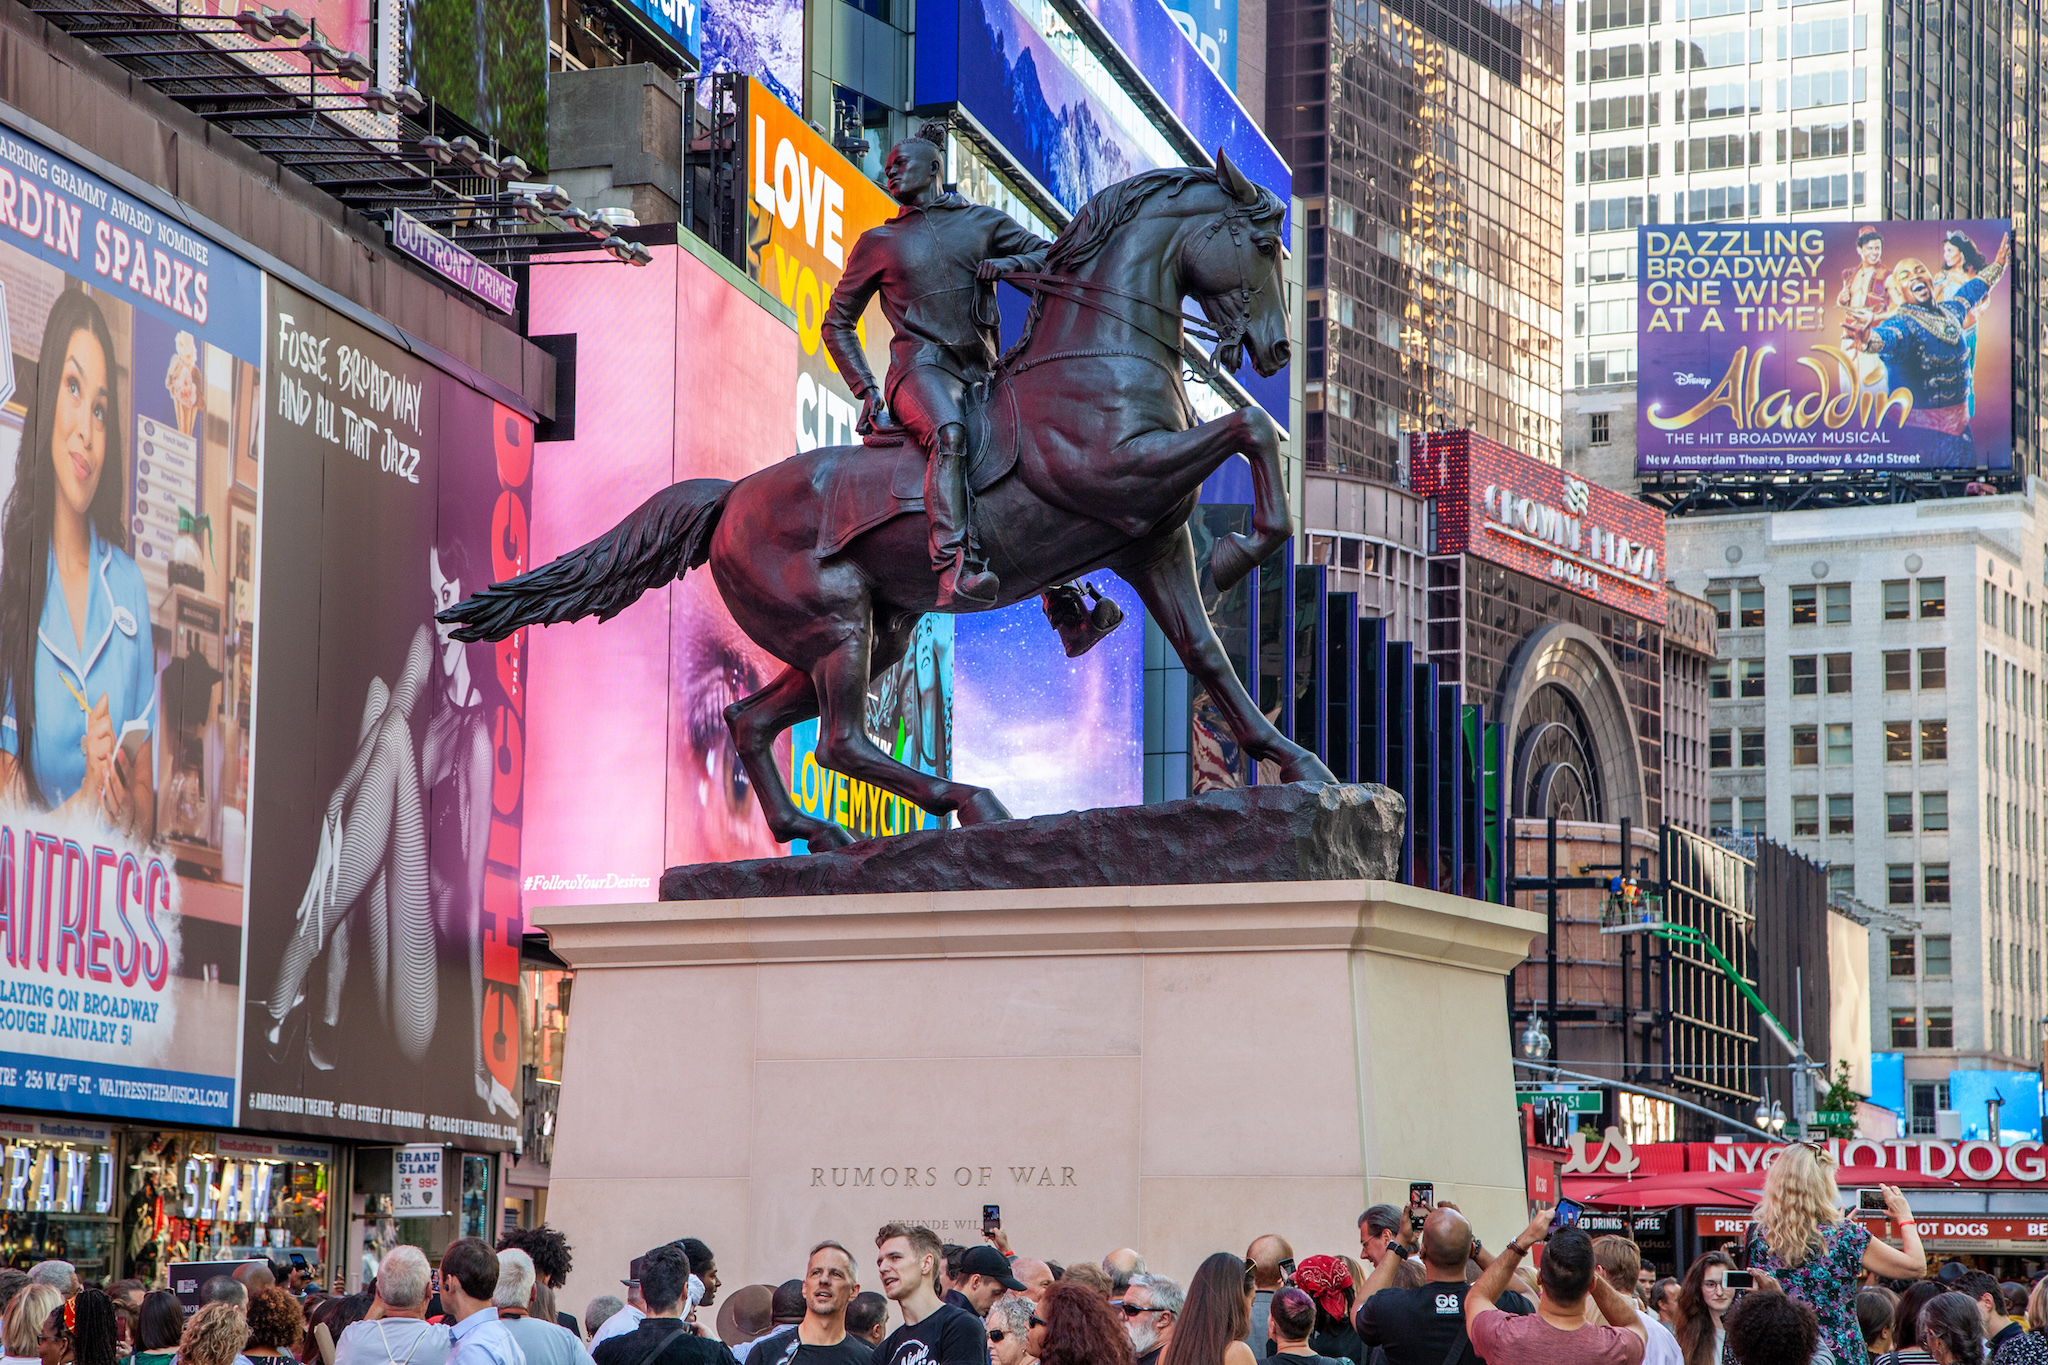 Kehinde Wiley unveils giant equestrian monument in Times Square